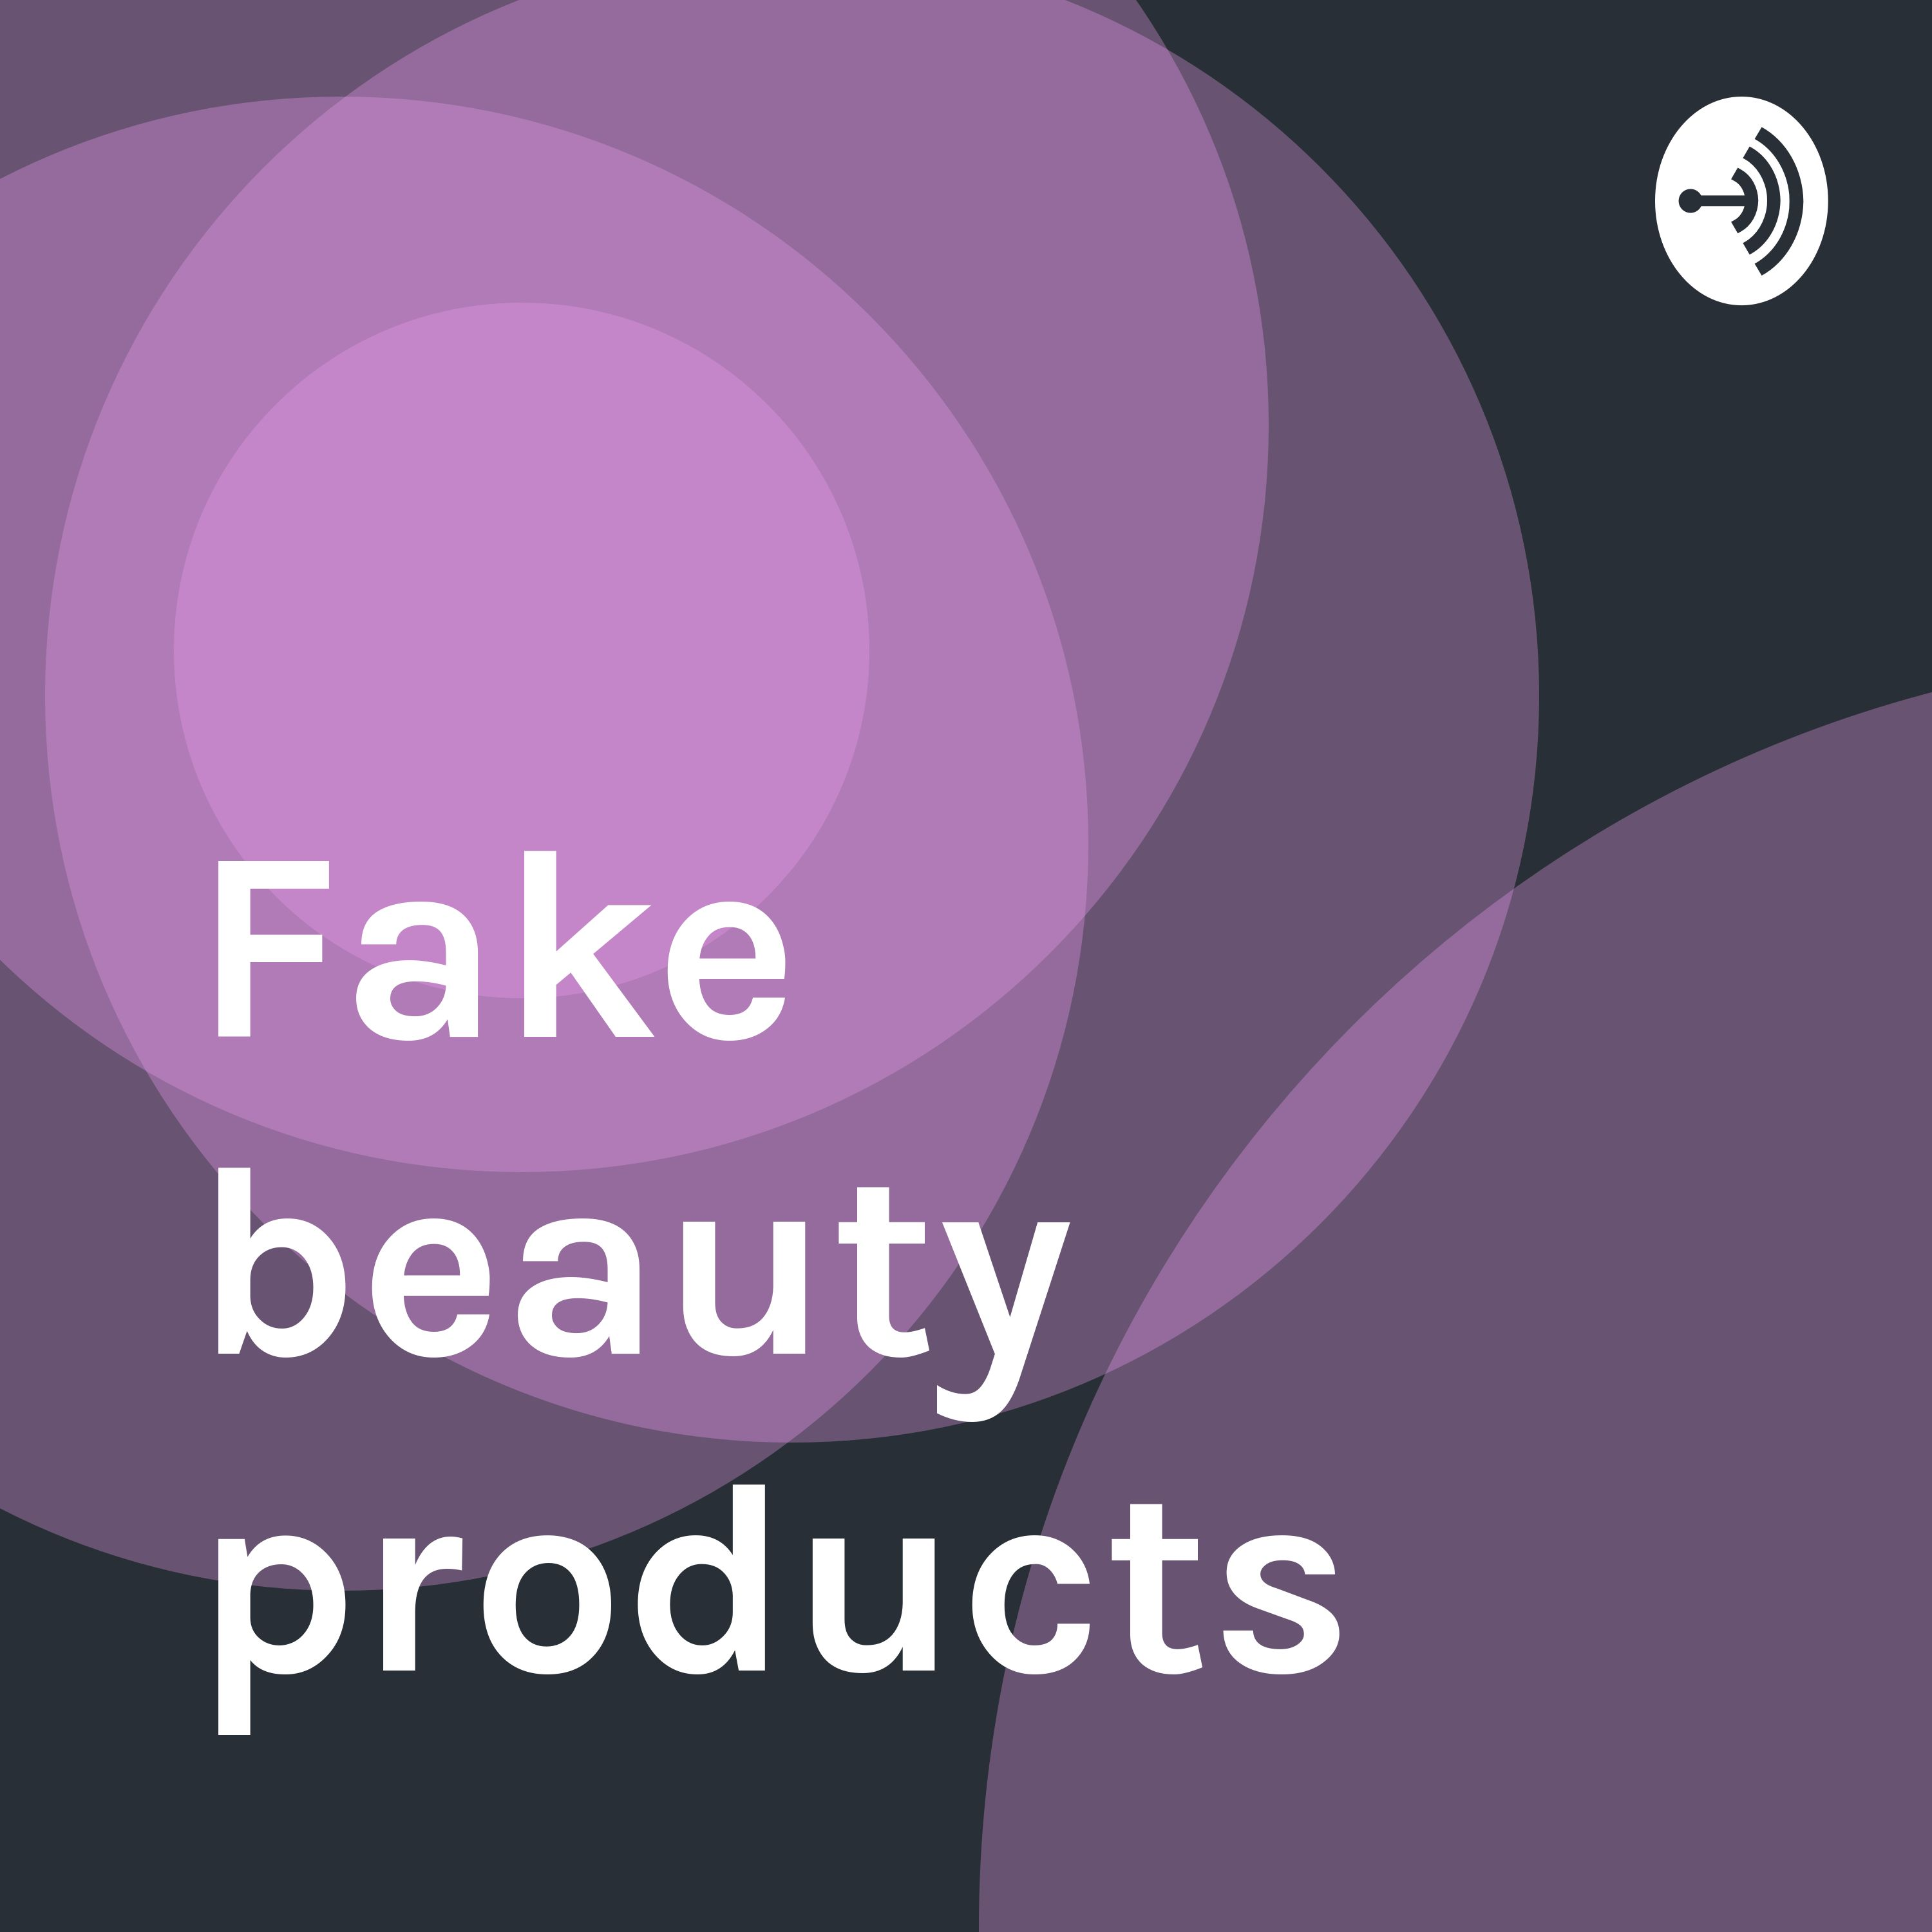 Fake beauty products   Listen via Stitcher for Podcasts